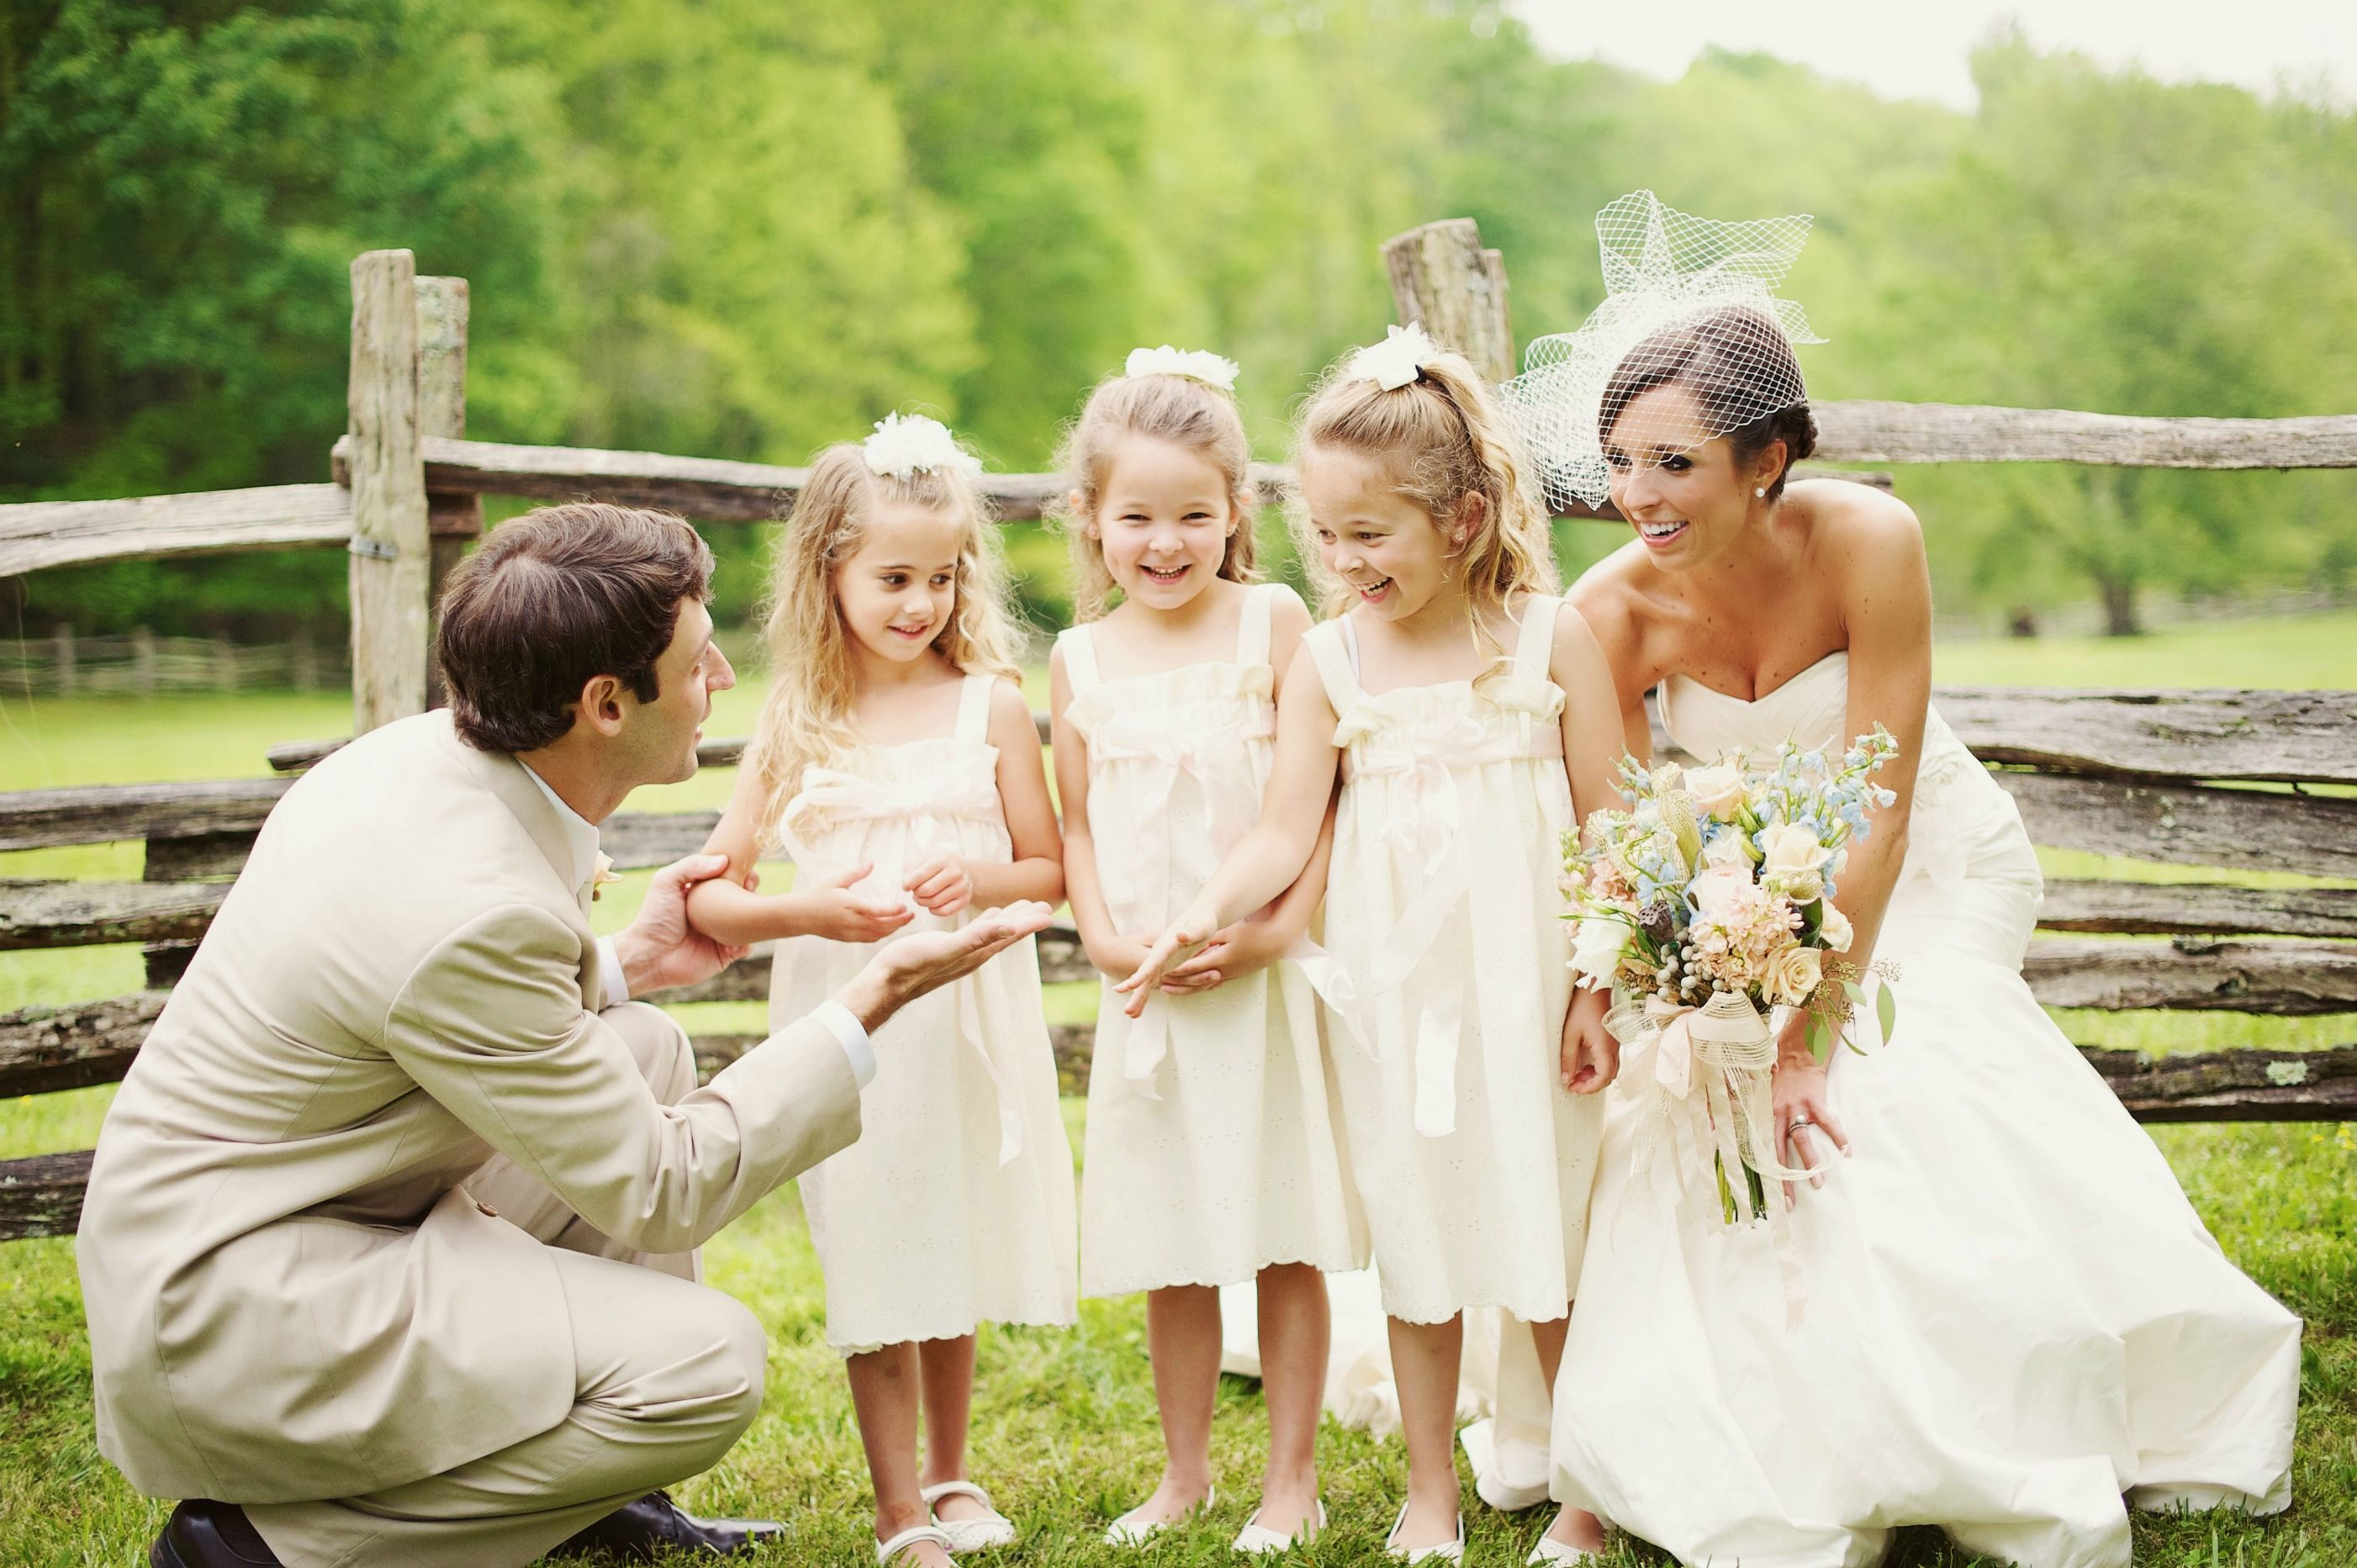 Loved our affordable and simple flower girl dresses from